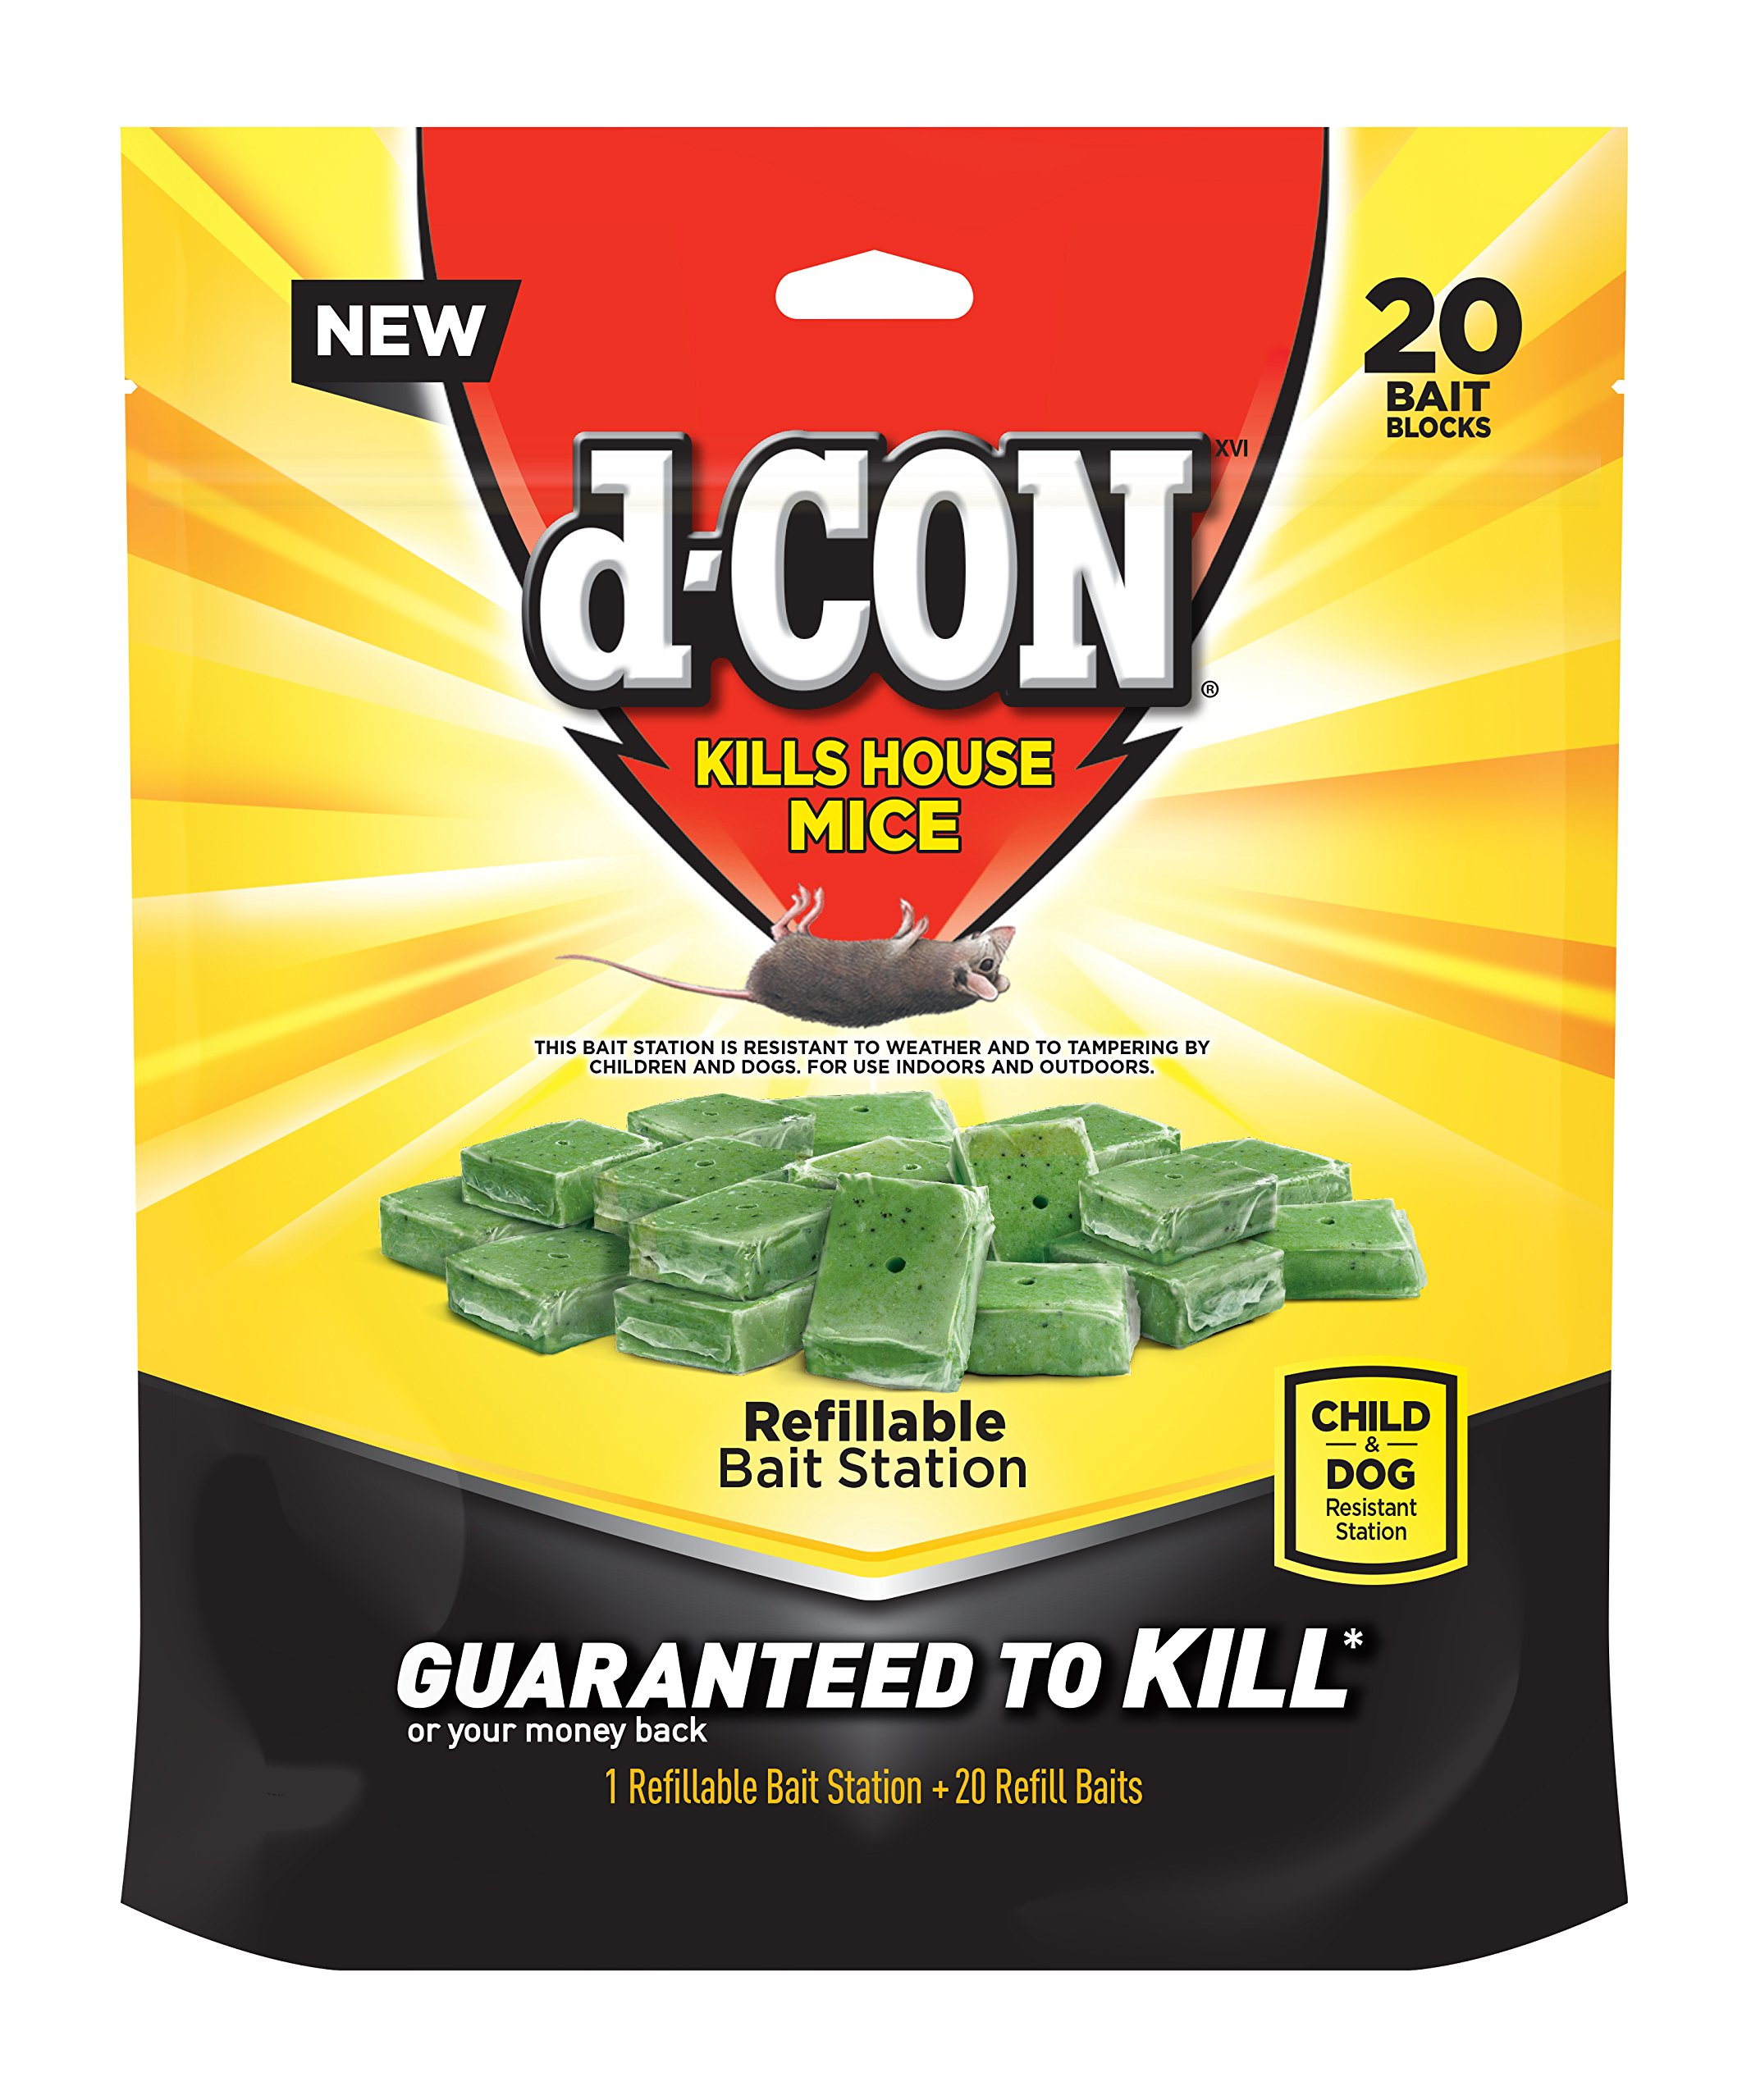 d-CON Refillable Corner Fit Mouse Poison Bait Station, 1 Trap + 20 Bait Refills by D-Con